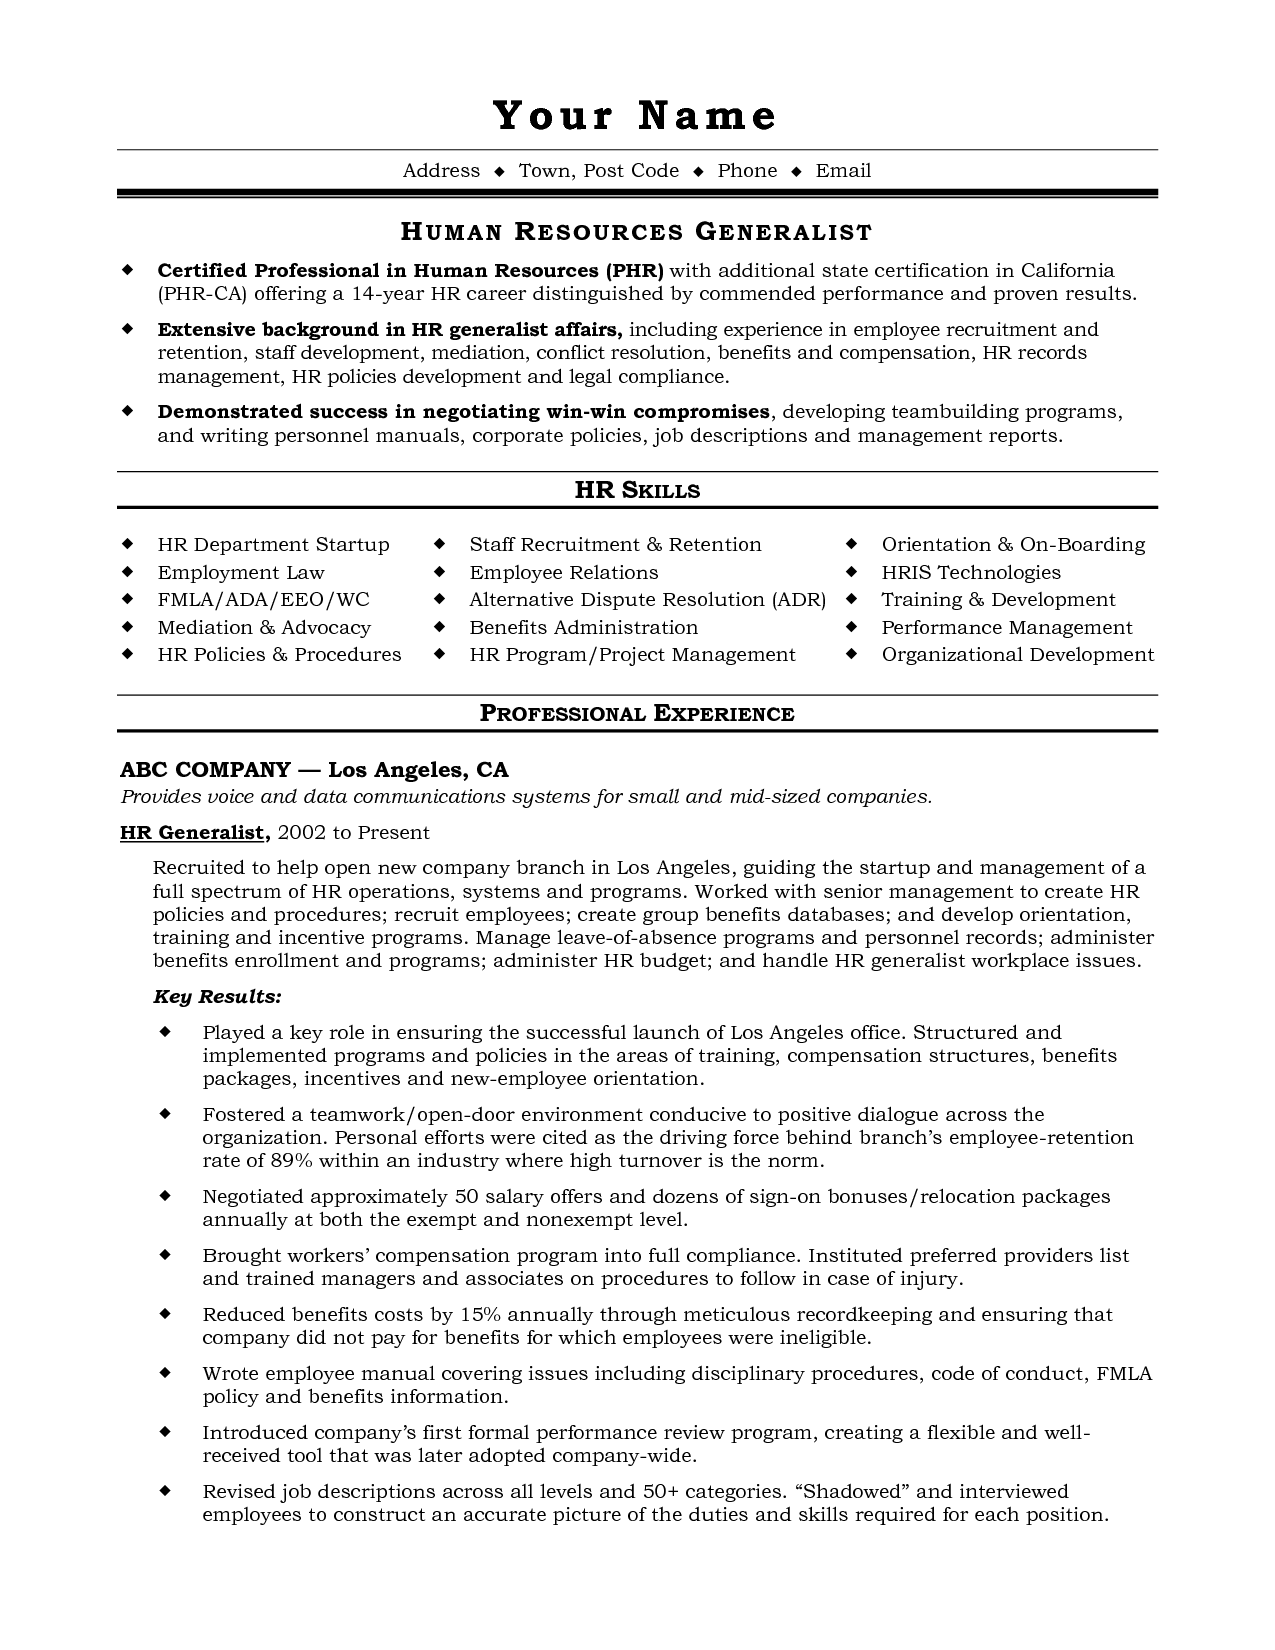 Free Resume Templates Human Resources Free Cv Template Word Resume Template Examples Project Manager Resume